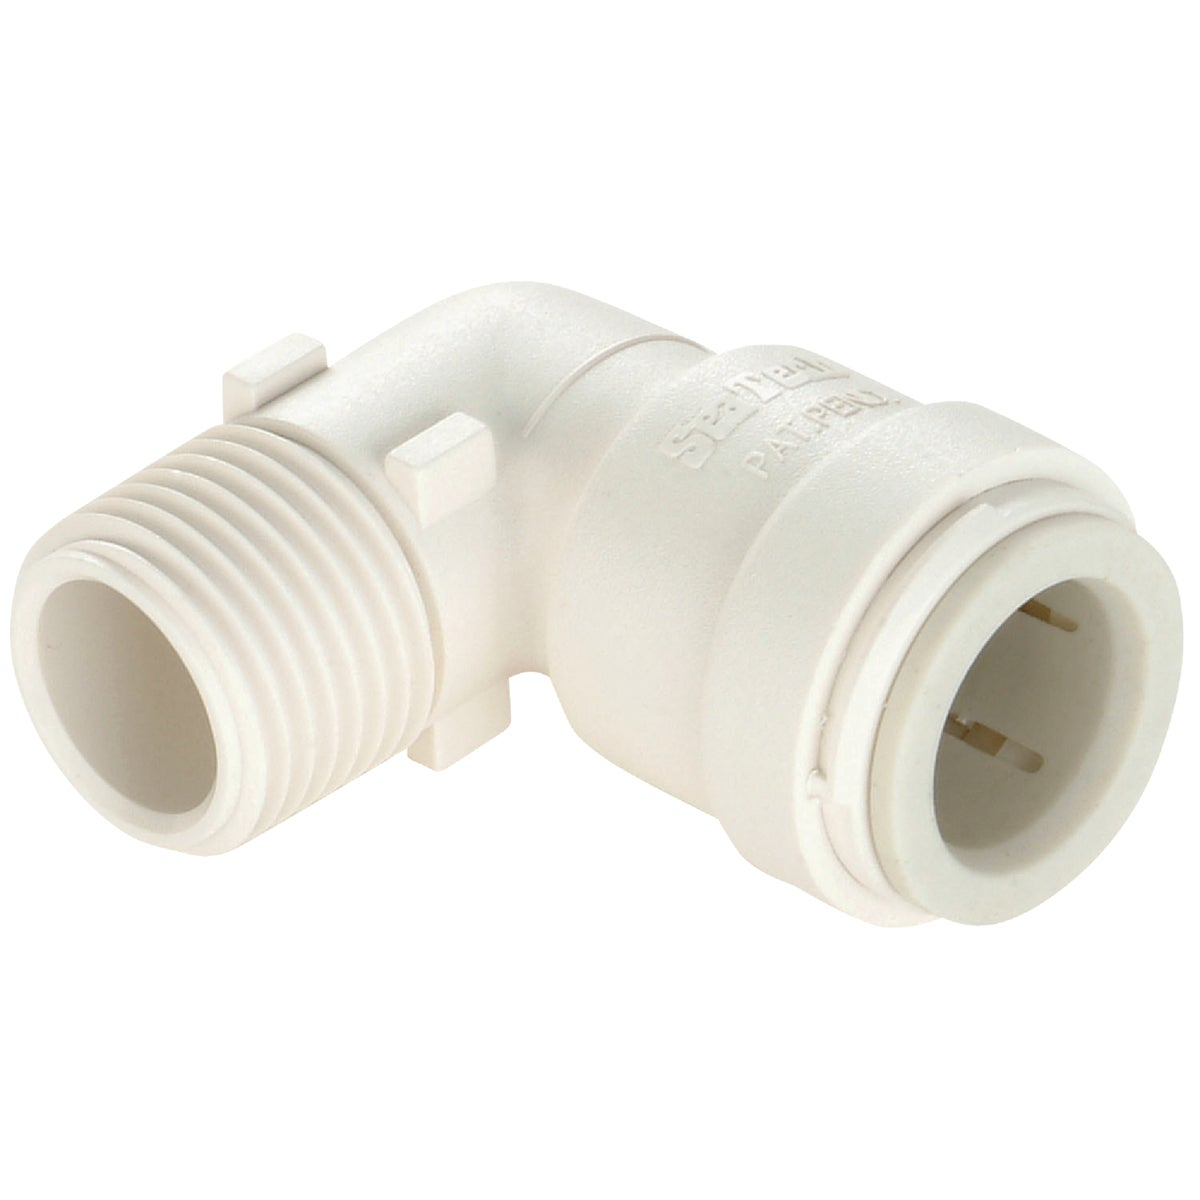 1/2CTSX3/8MPT Q/C ELBOW - P-631 by Watts Pex